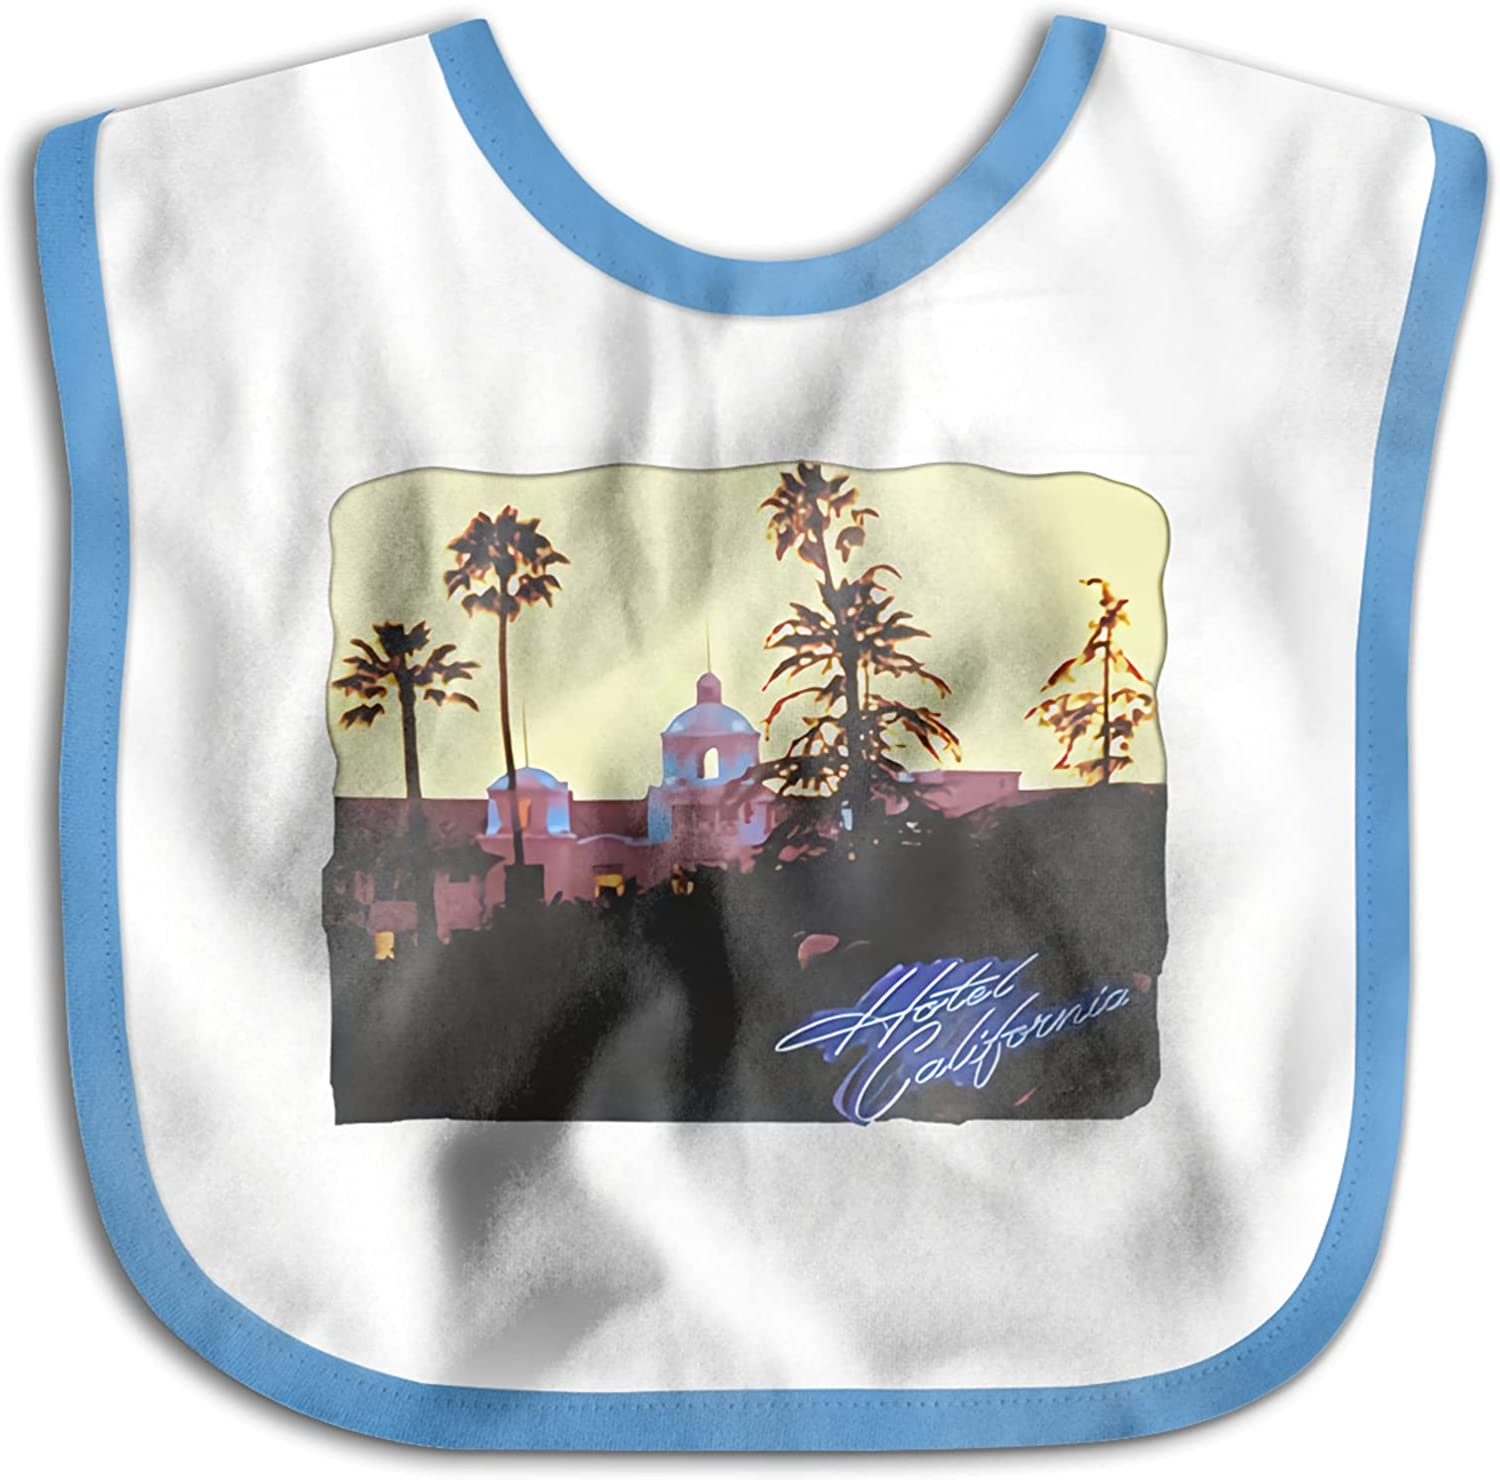 Nicky J Henry Hotel California New product type Neutral Cotton Dr Soft Opening large release sale Terry Baby